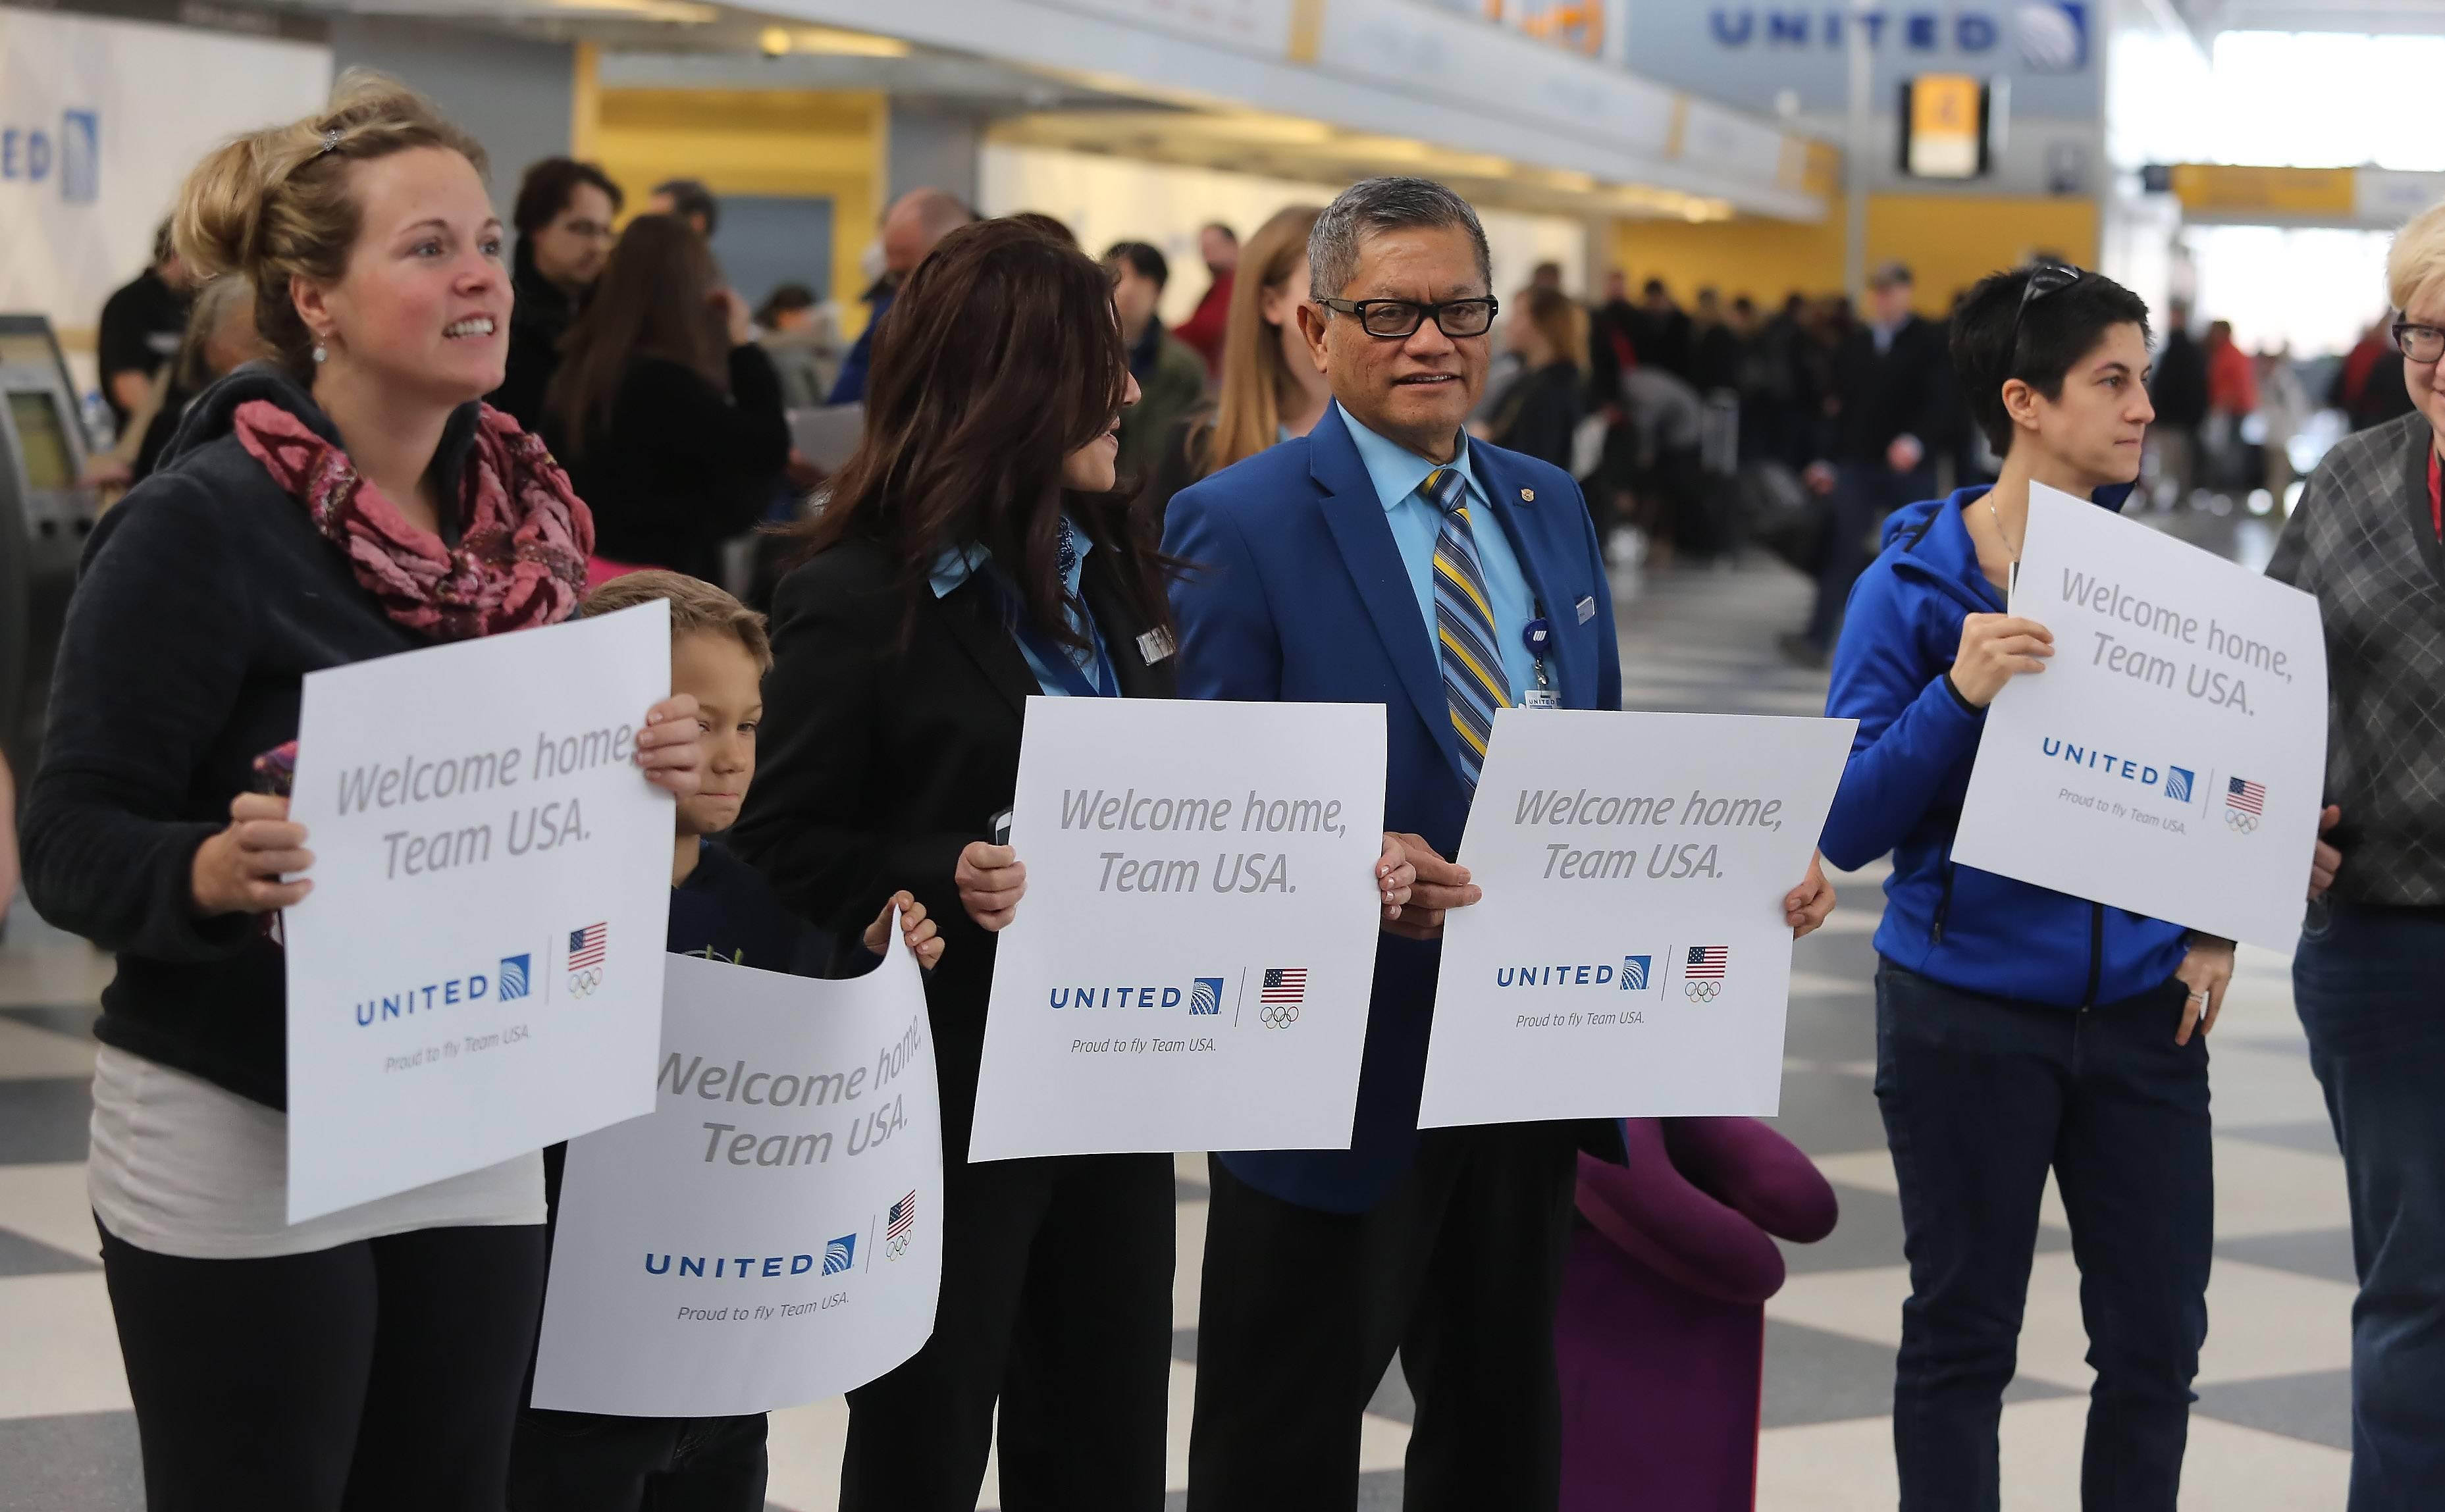 United employees and travelers held up signs welcoming home members of Team USA, after about 20 skiers, snowboarders and curlers came through O'Hare International Airport Monday, on their way home from the Winter Olympics in Sochi, Russia. United Airlines is the official airline of Team USA.